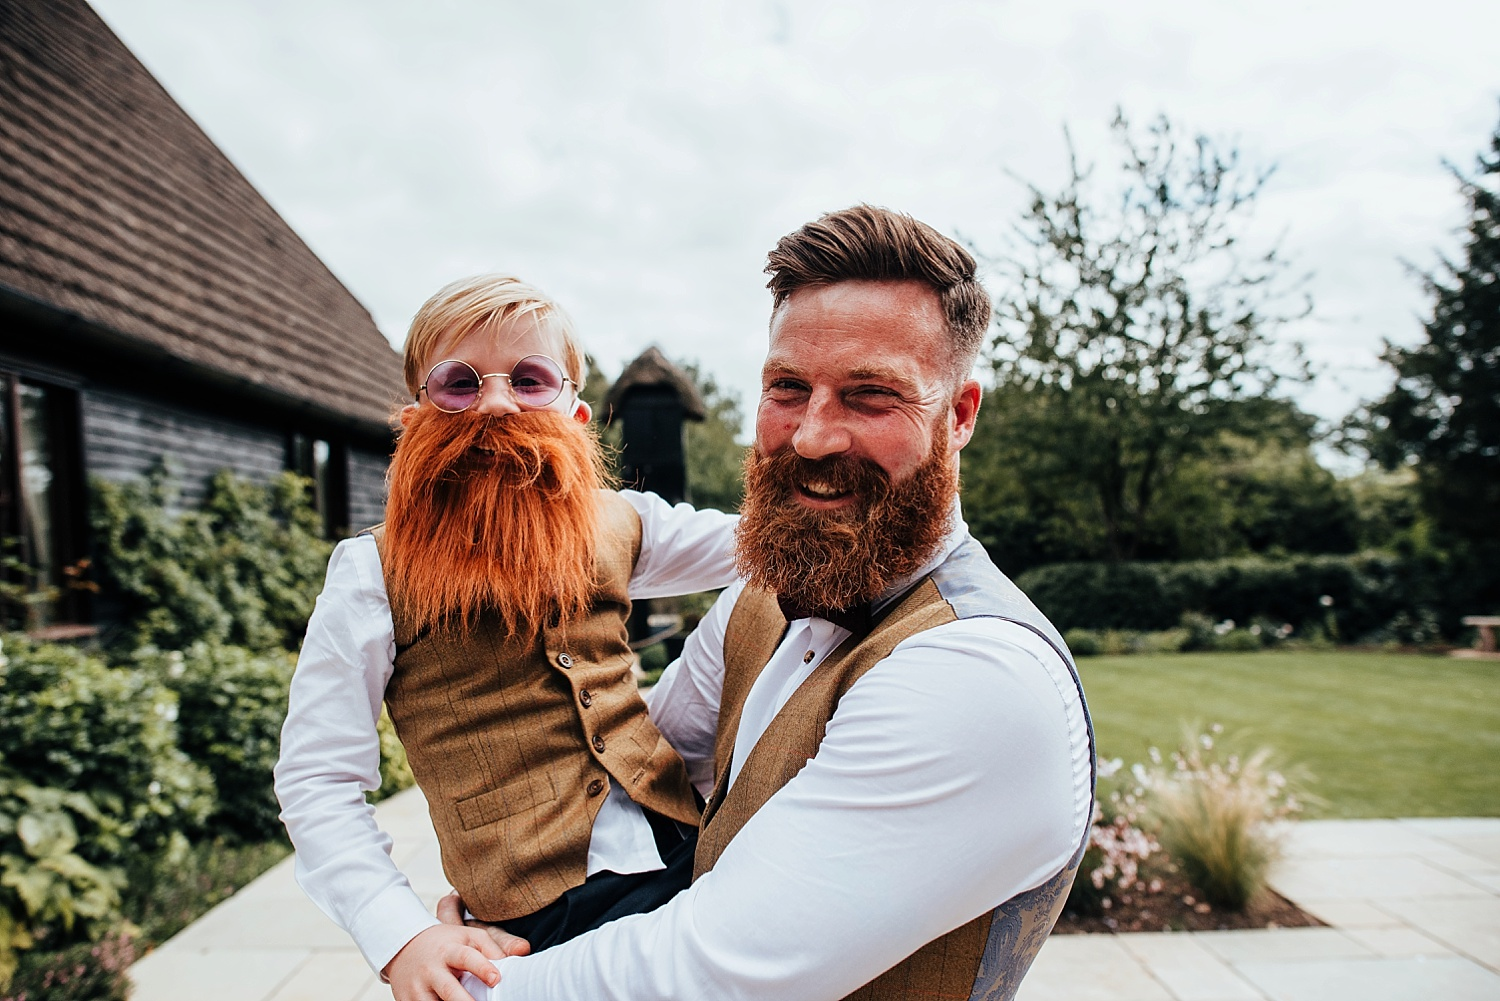 father with beard holding son with a dress up beard